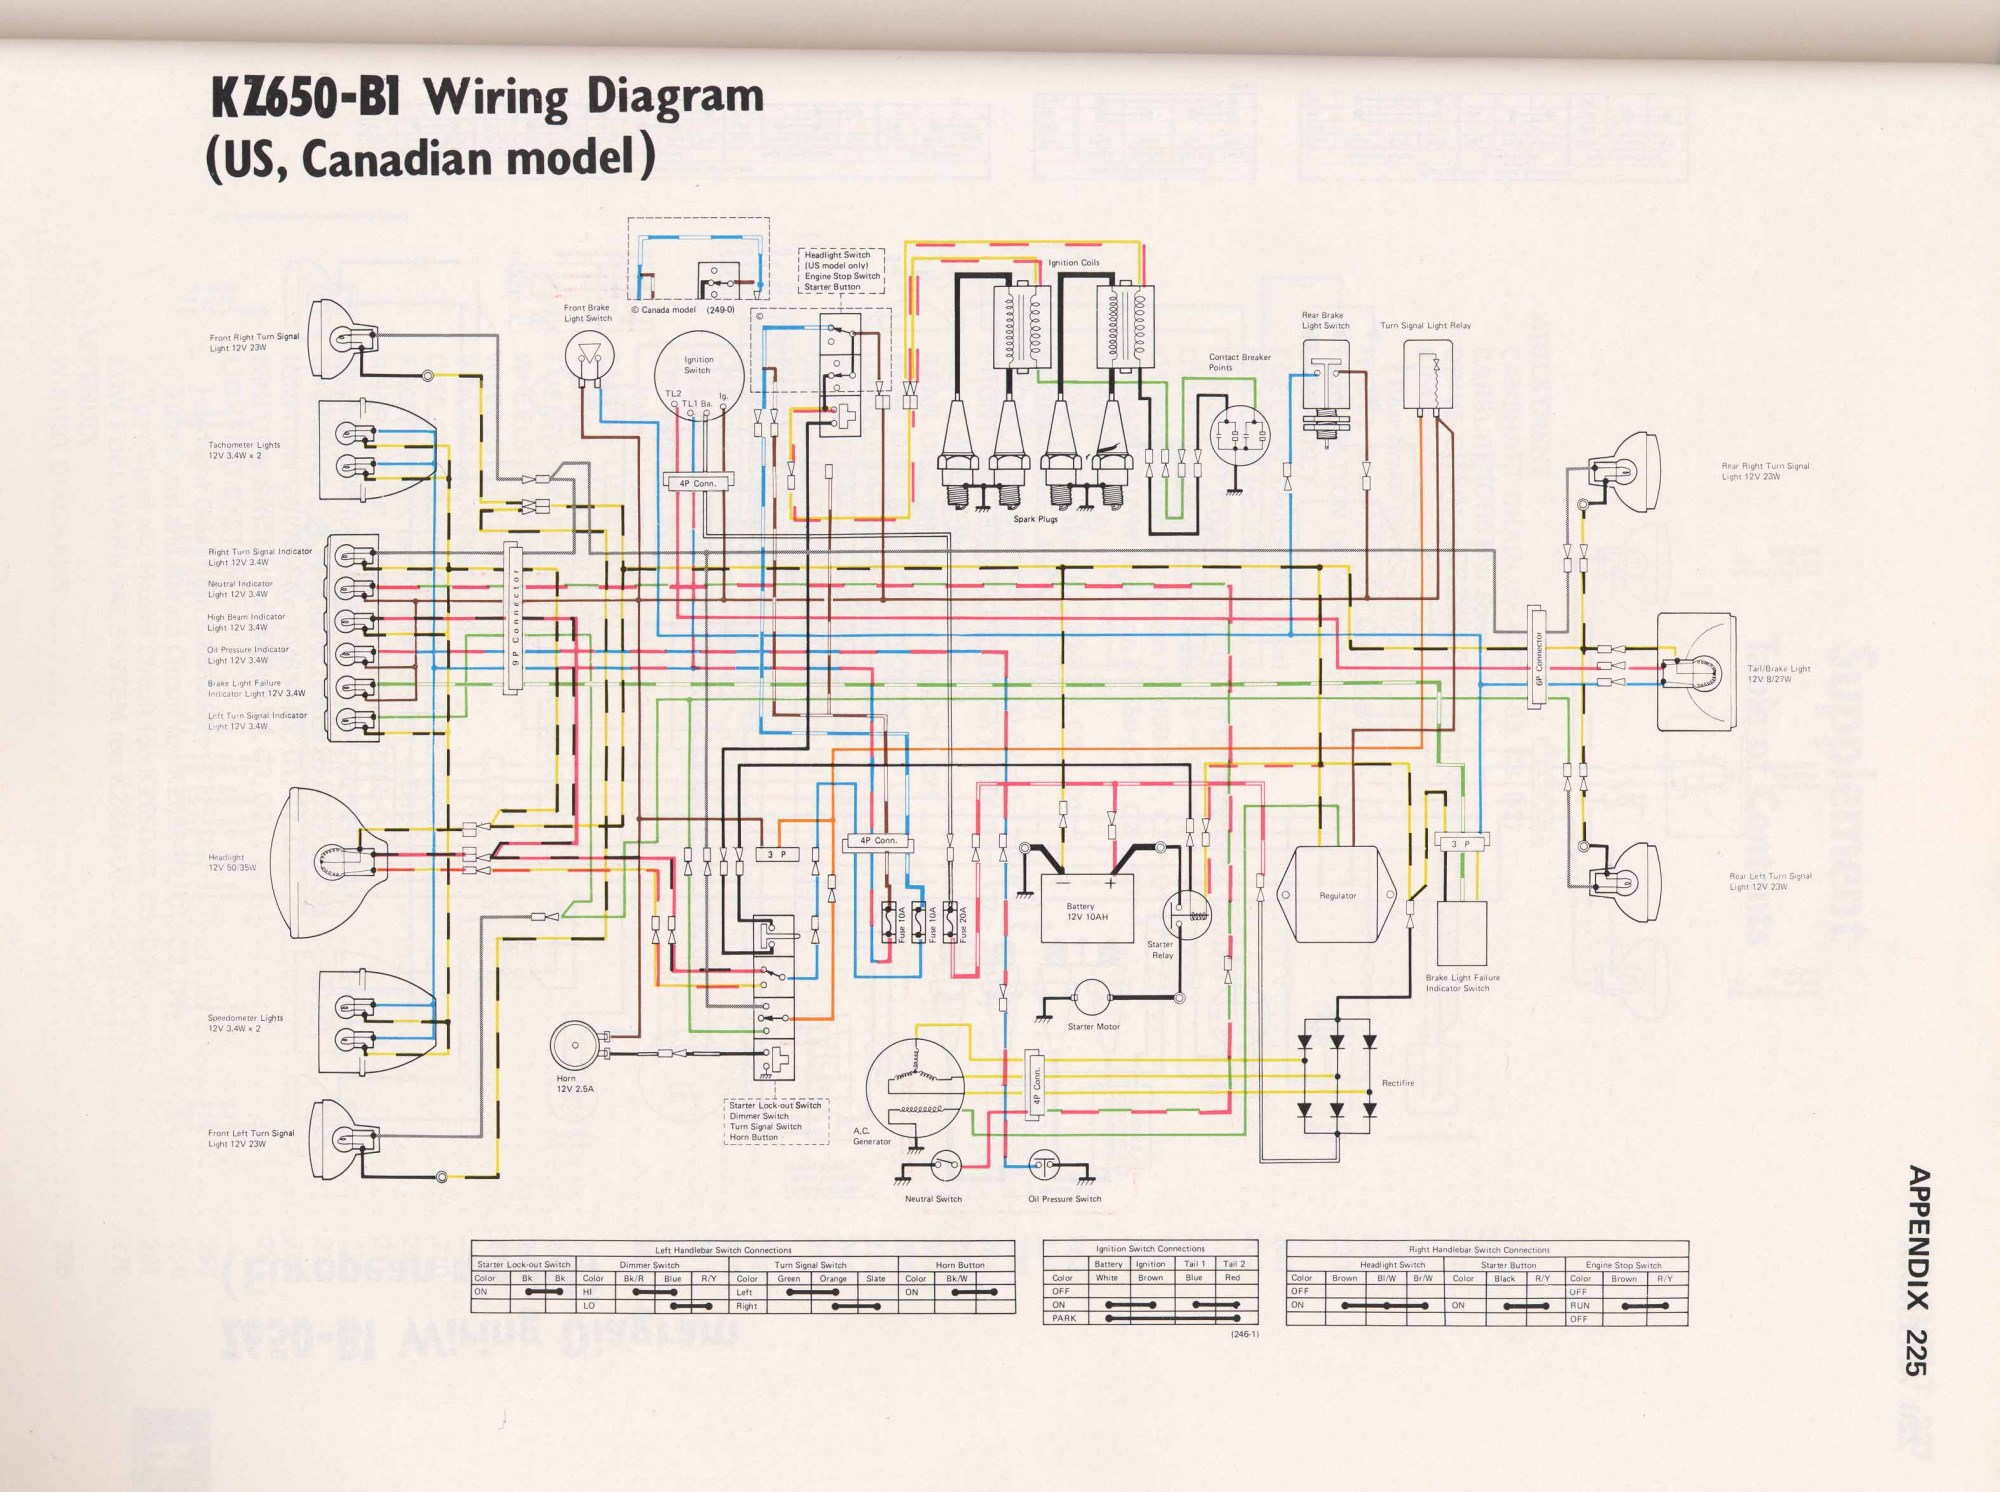 hight resolution of kawasaki gpz 750 wiring diagram wiring diagrams site rh 31 geraldsorger de 1983 kawasaki gpz 750 wiring diagram 1983 kawasaki gpz 750 wiring diagram